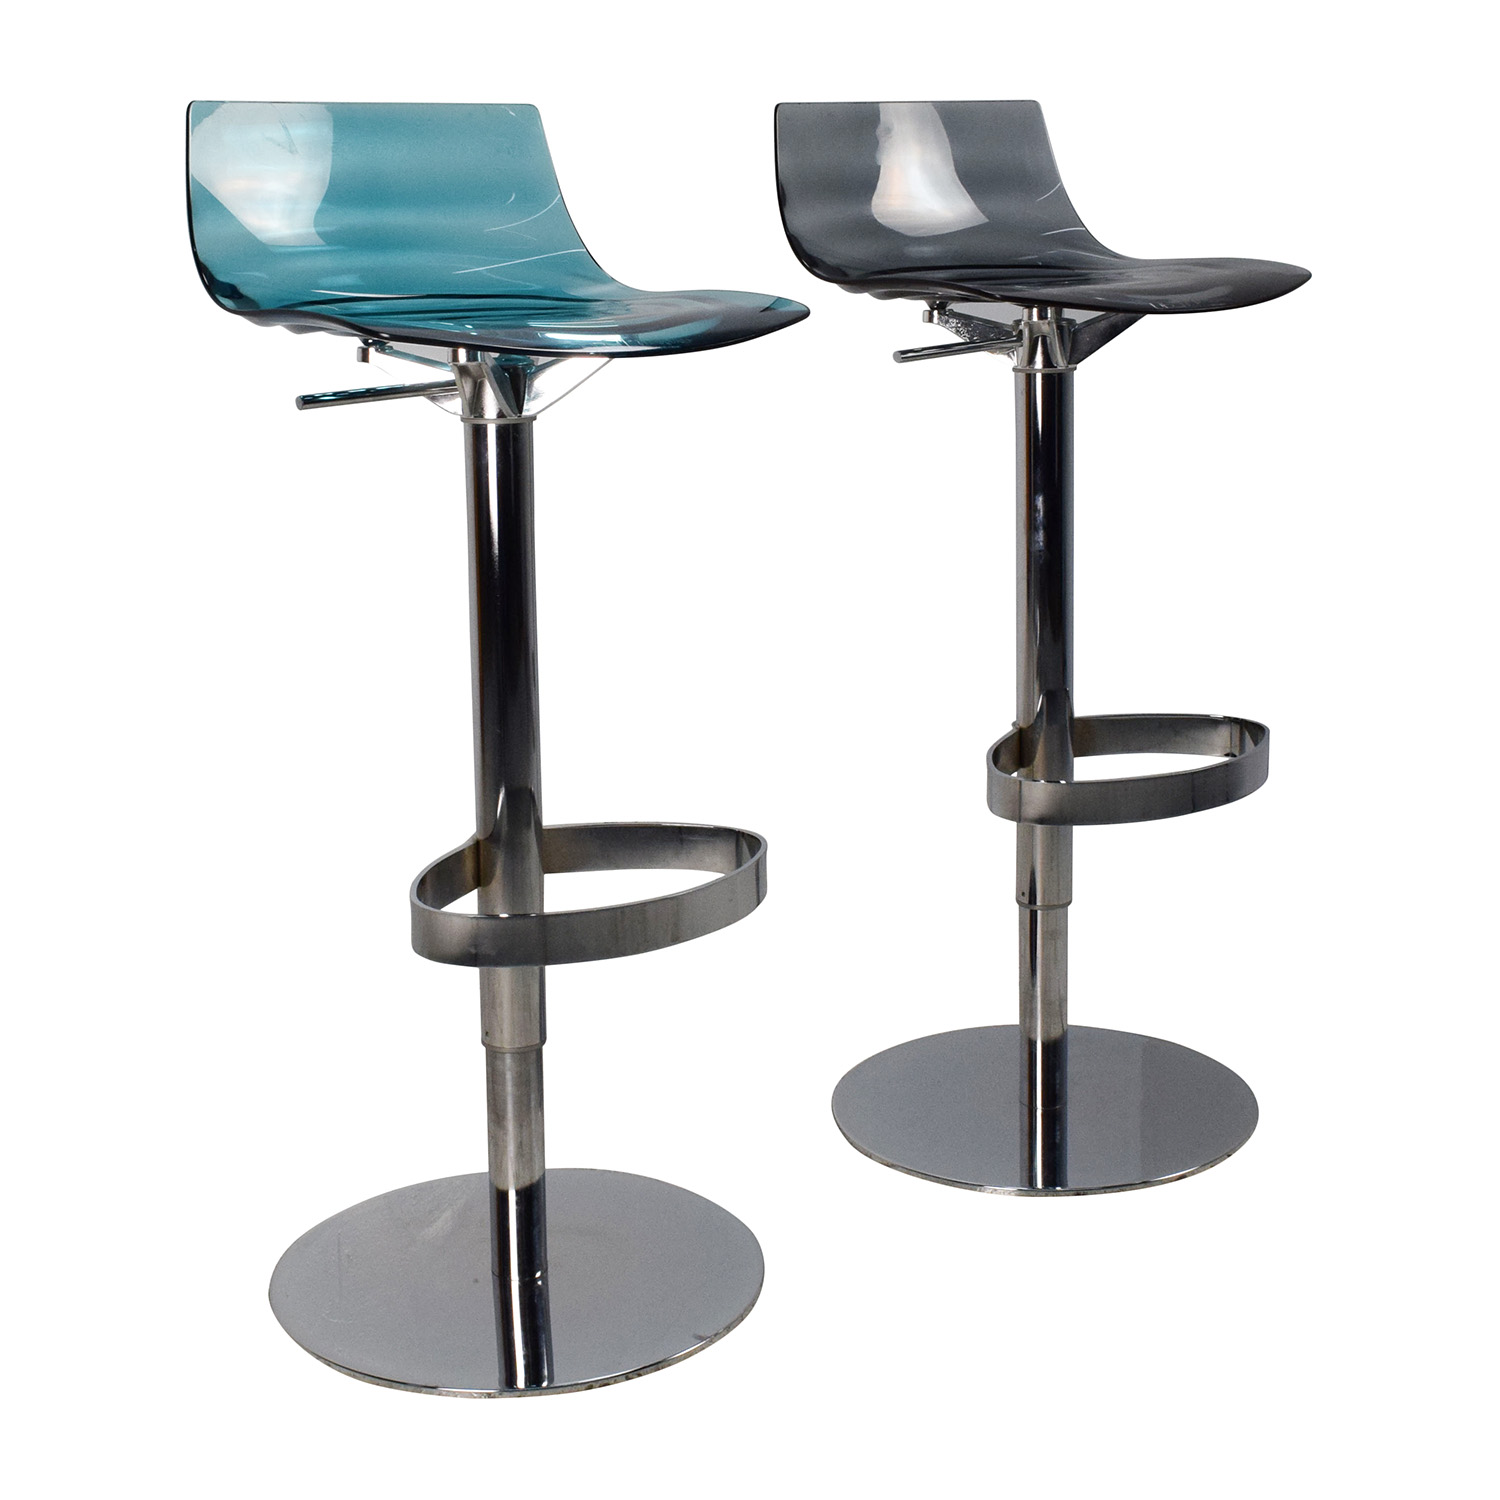 87 Off Calligaris Calligaris L 39 Eau Adjustable Swivel Bar Stool Pair Chairs